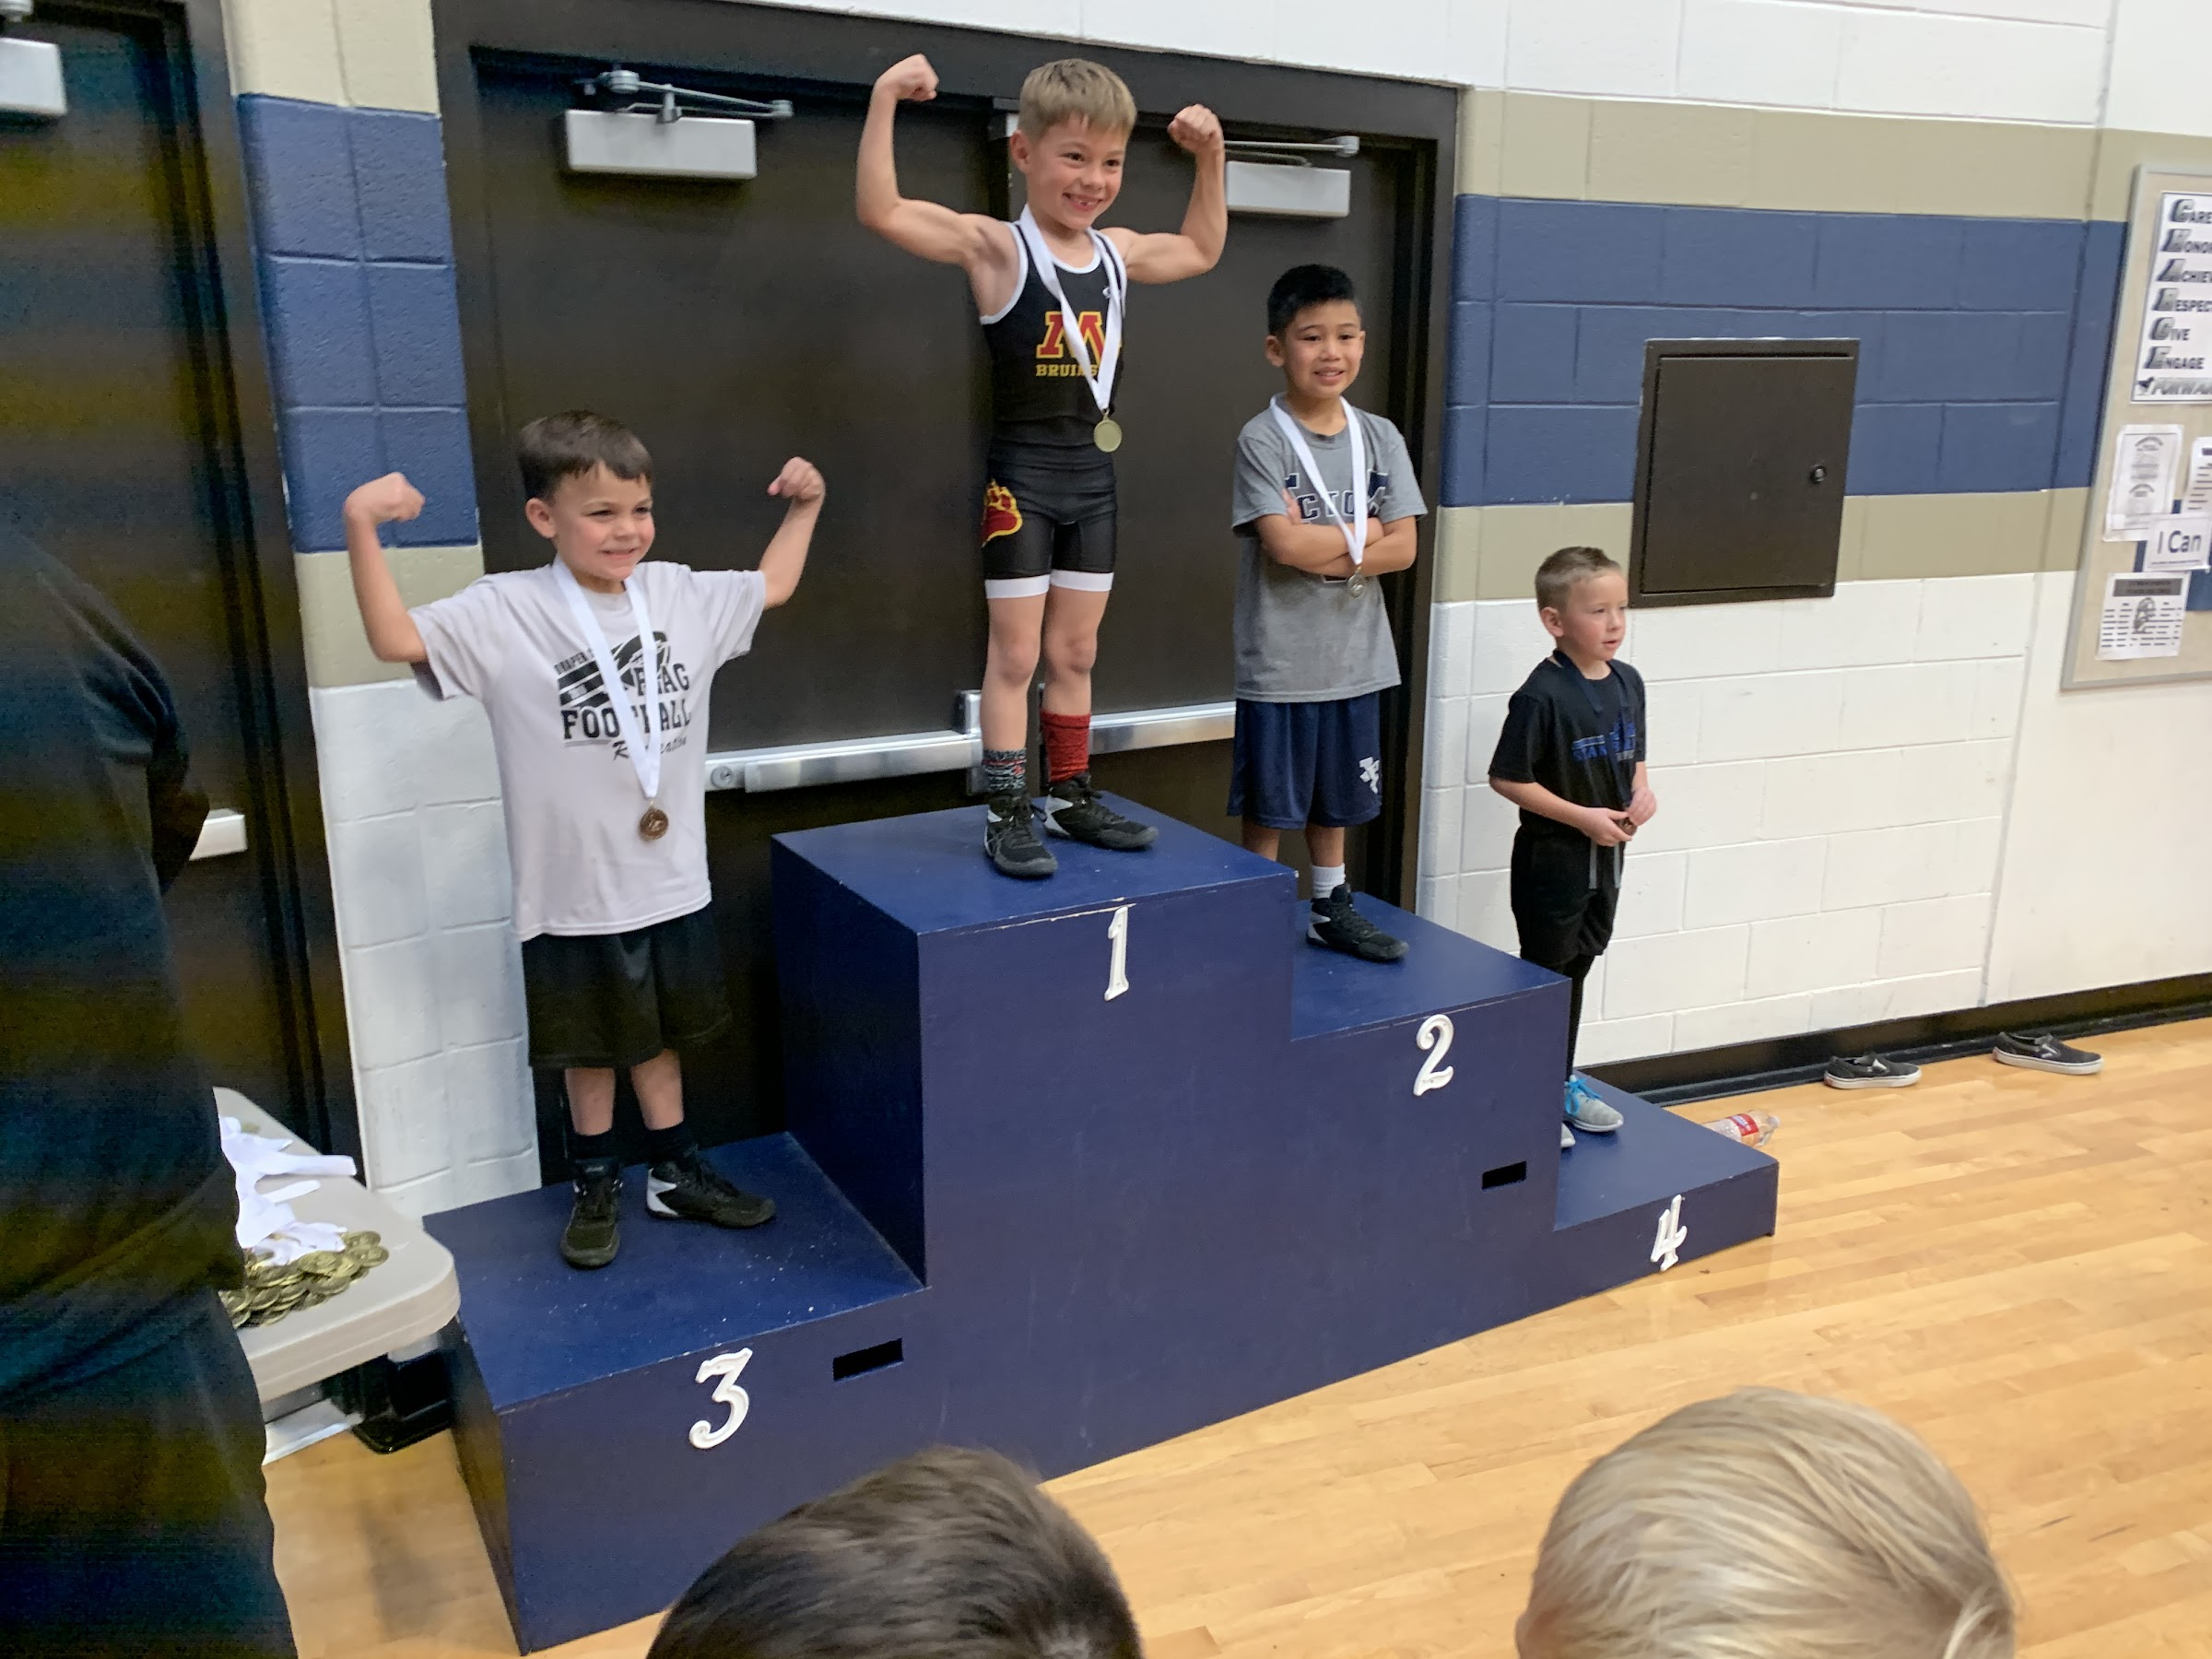 Roo at his first wrestling match